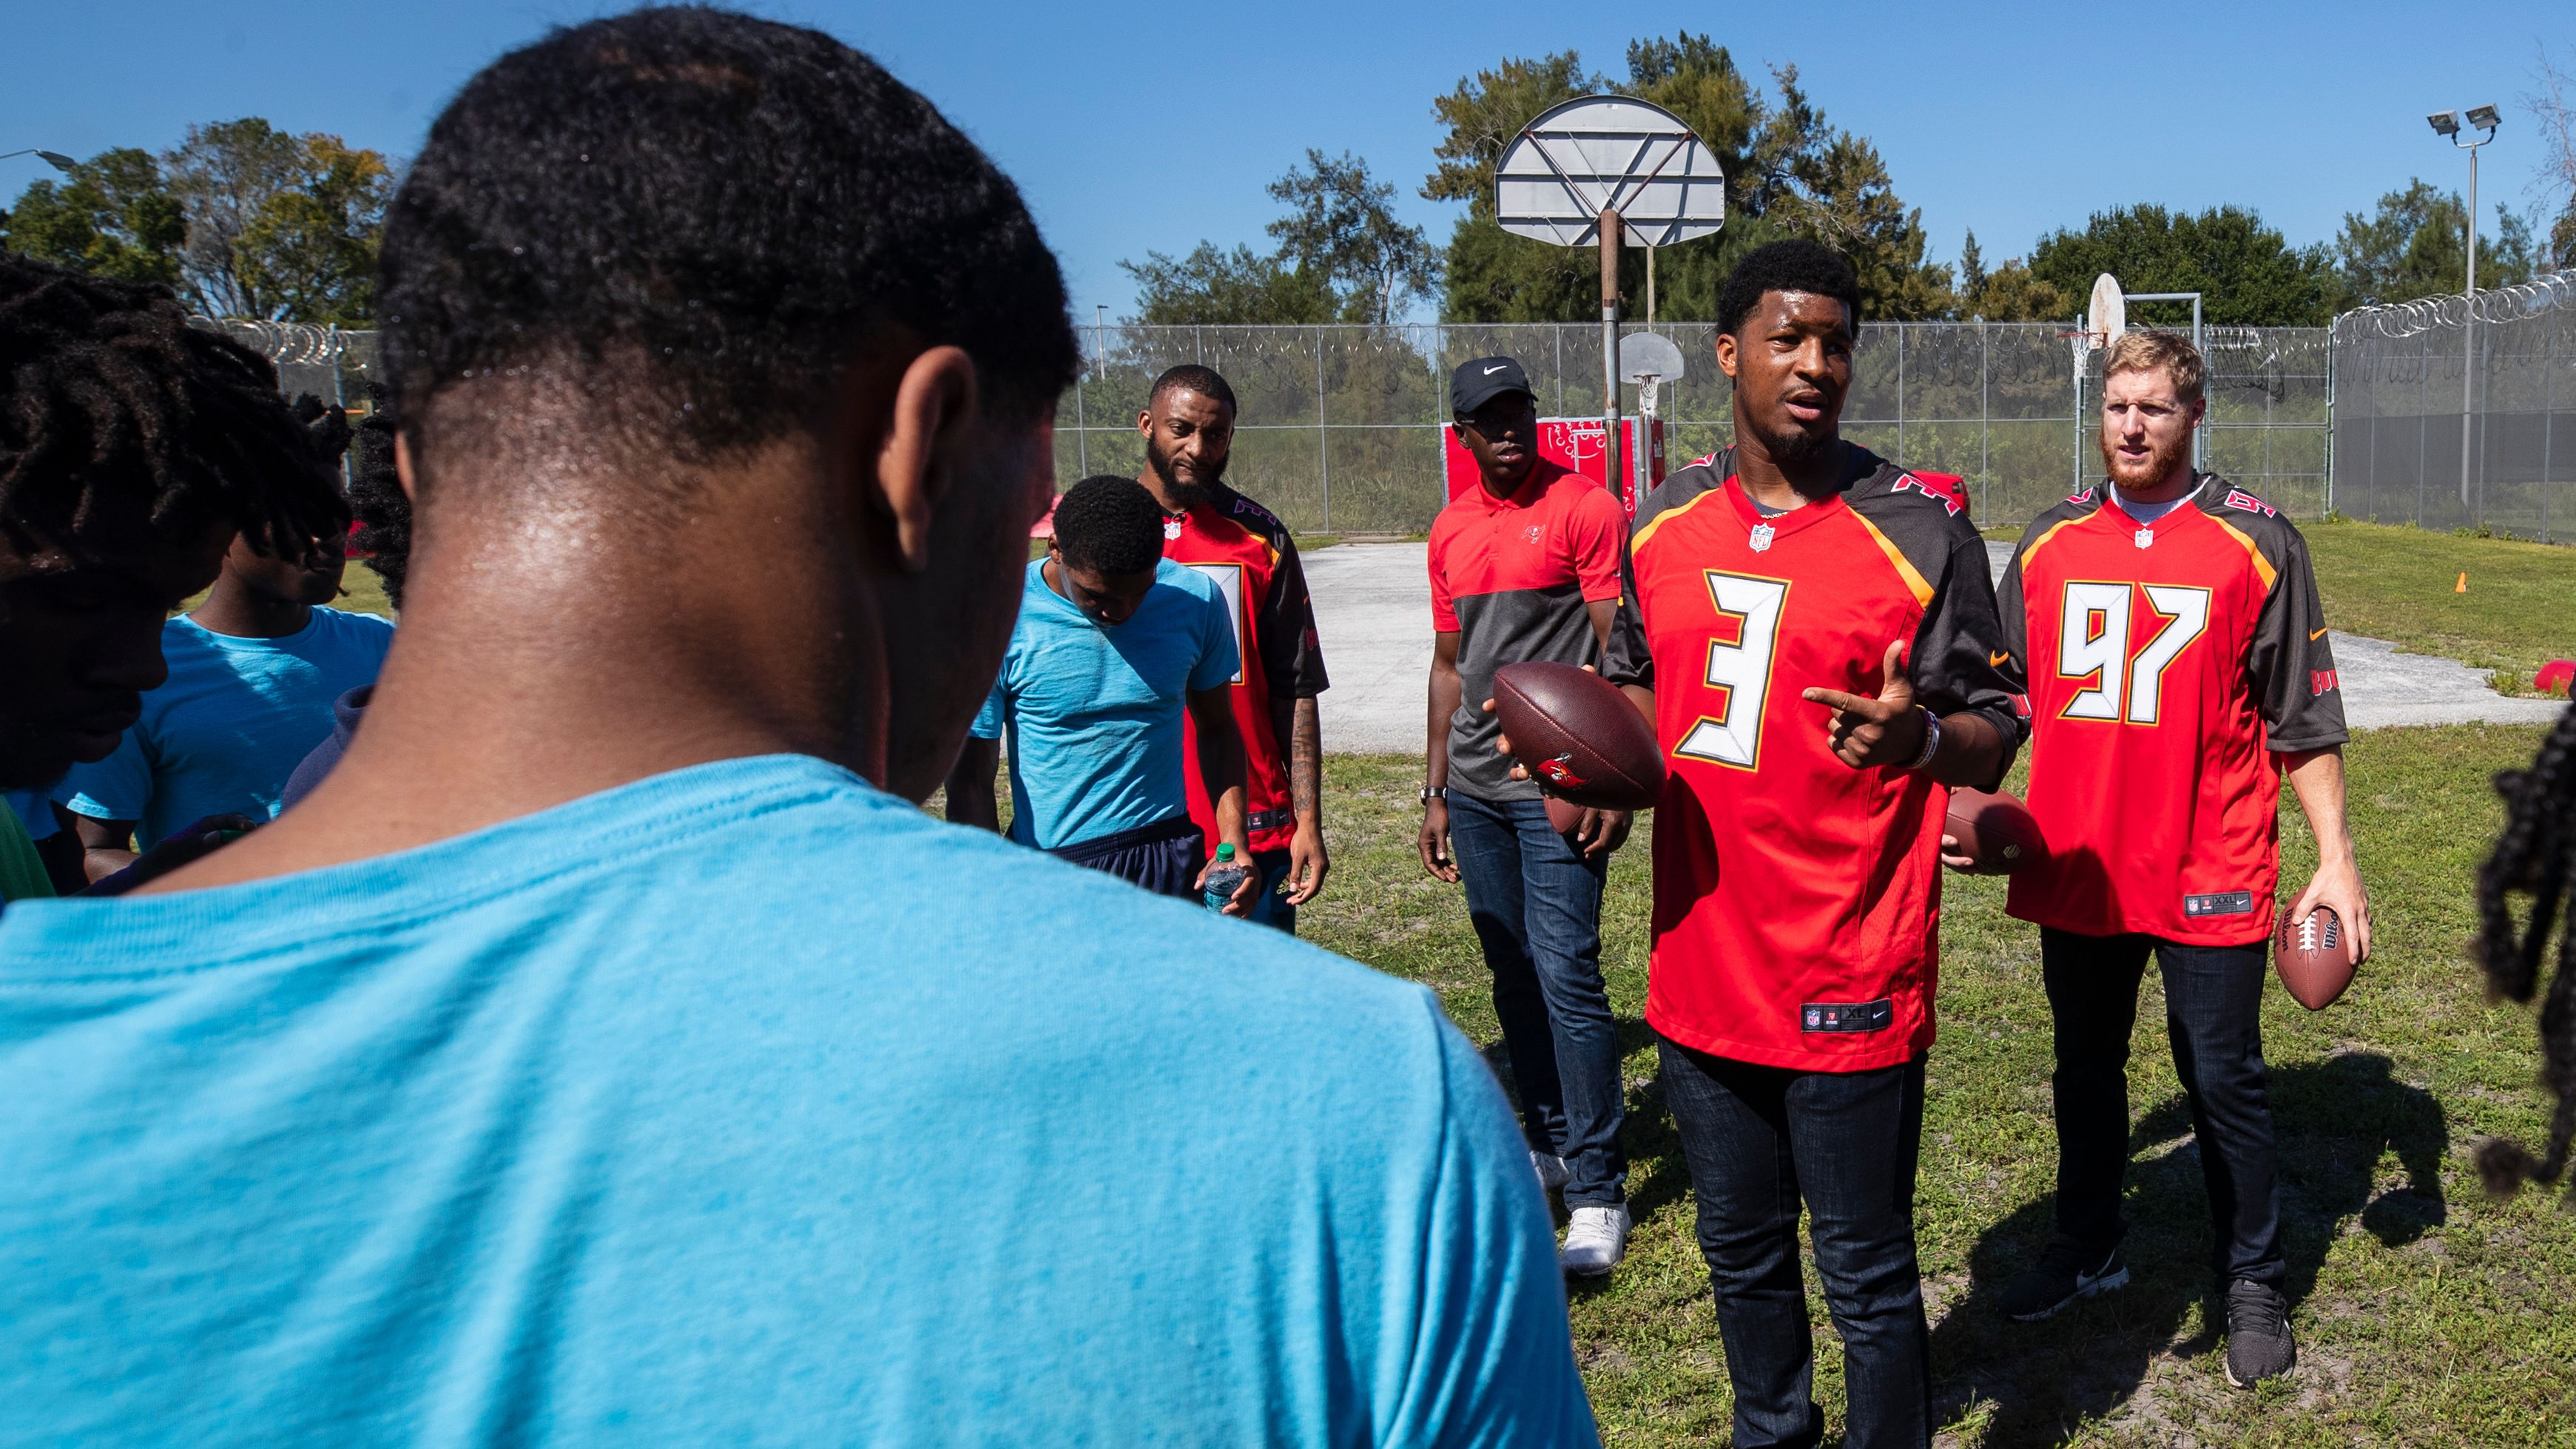 Buccaneers Players Encourage, Empower Youth at Hillsborough Detention Center in Social Justice Visit